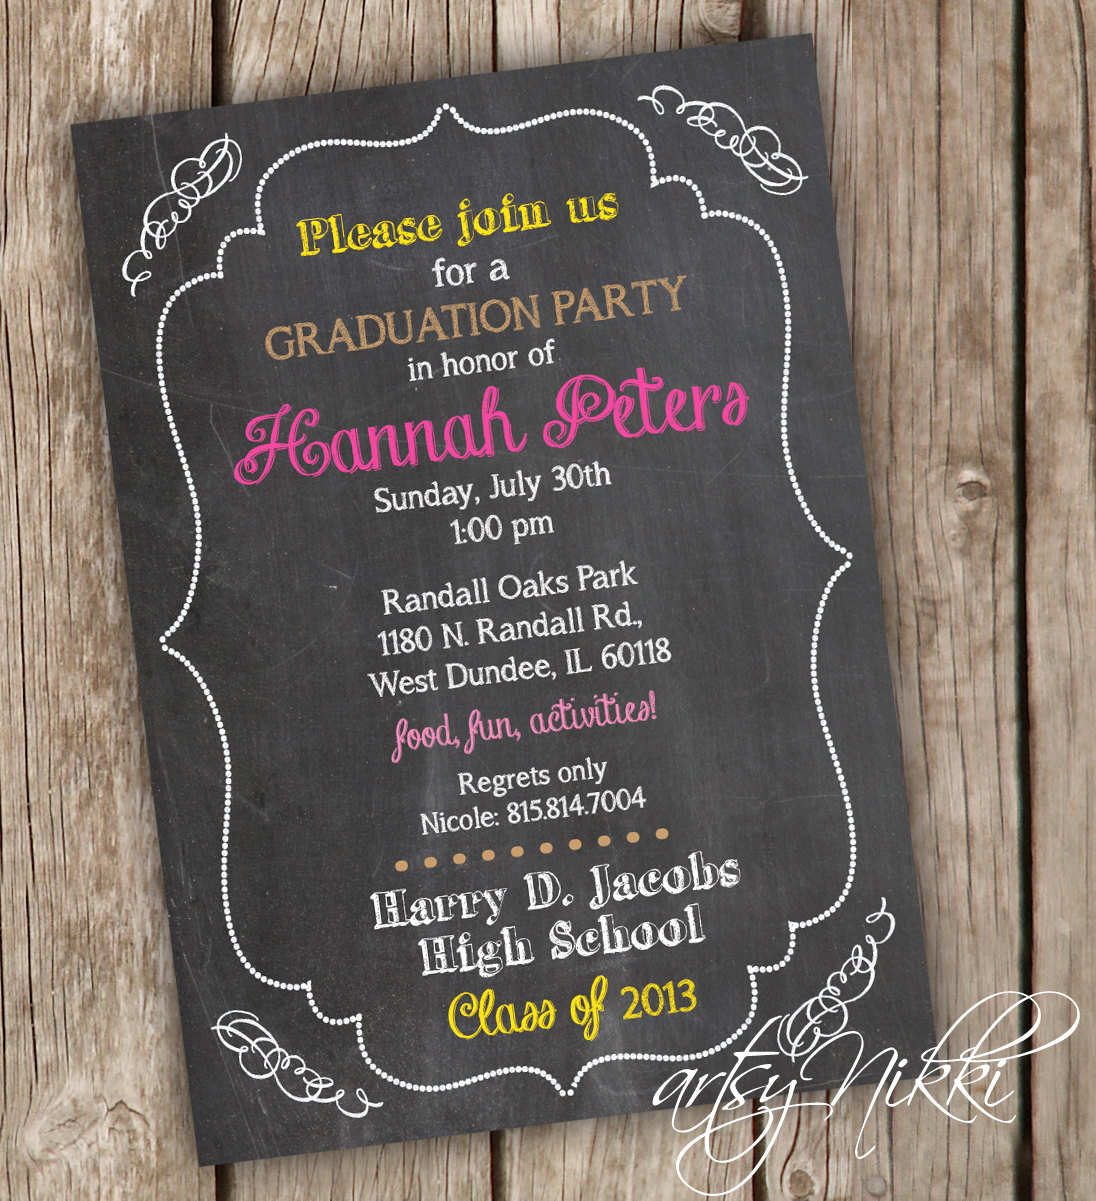 Graduation Party Invitation Templates Luxury Graduation Party Invitation Chalkboard Style Graduation